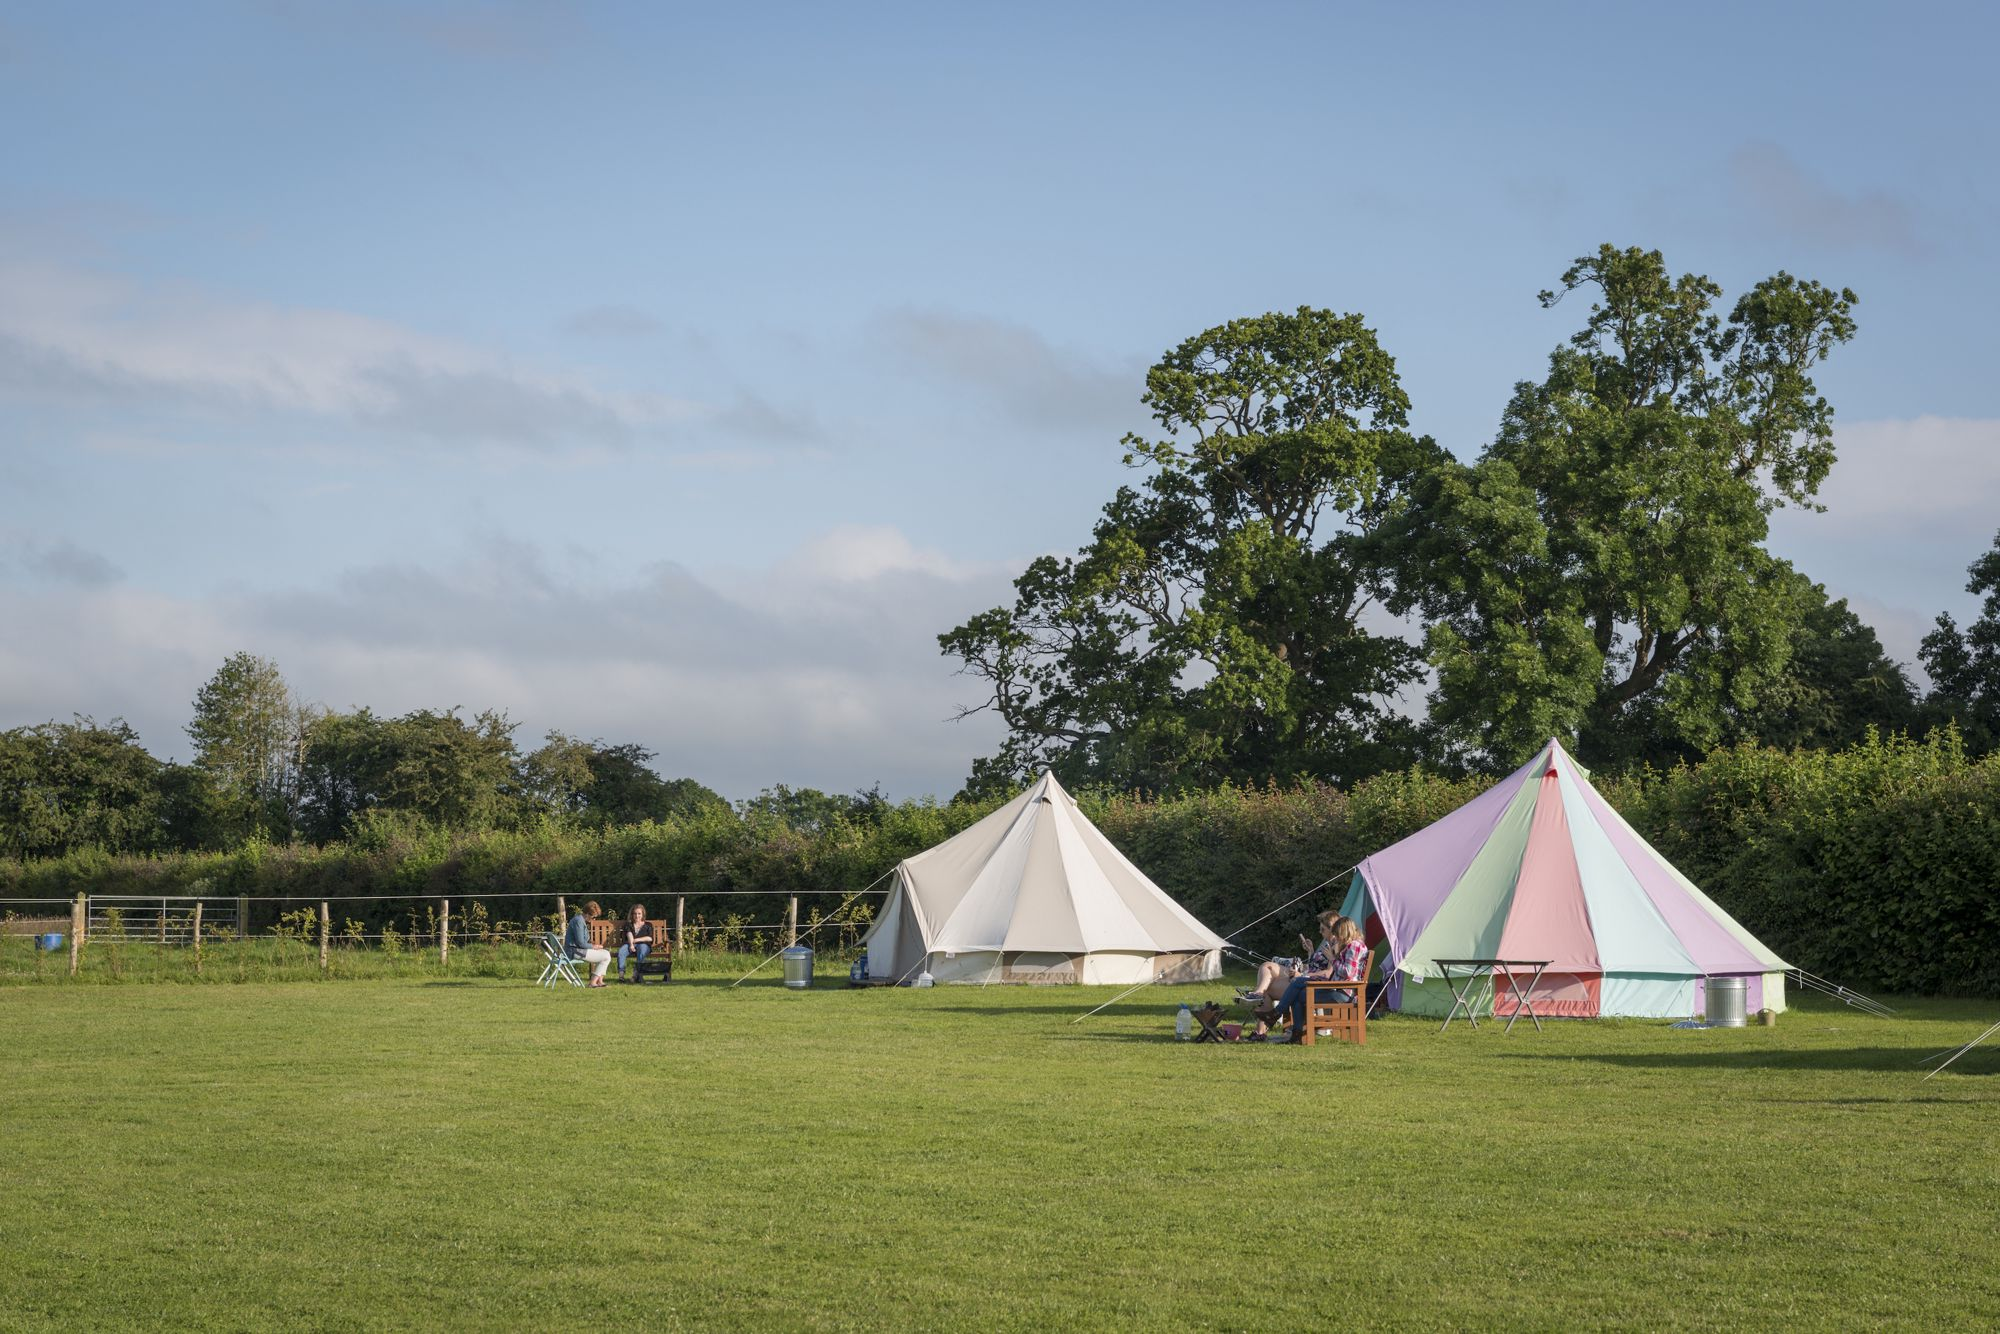 Situated amidst beautiful Wiltshire farmland, Botany Camping is a small 10 pitch site just a stone's throw from Longleat House and Safari park.